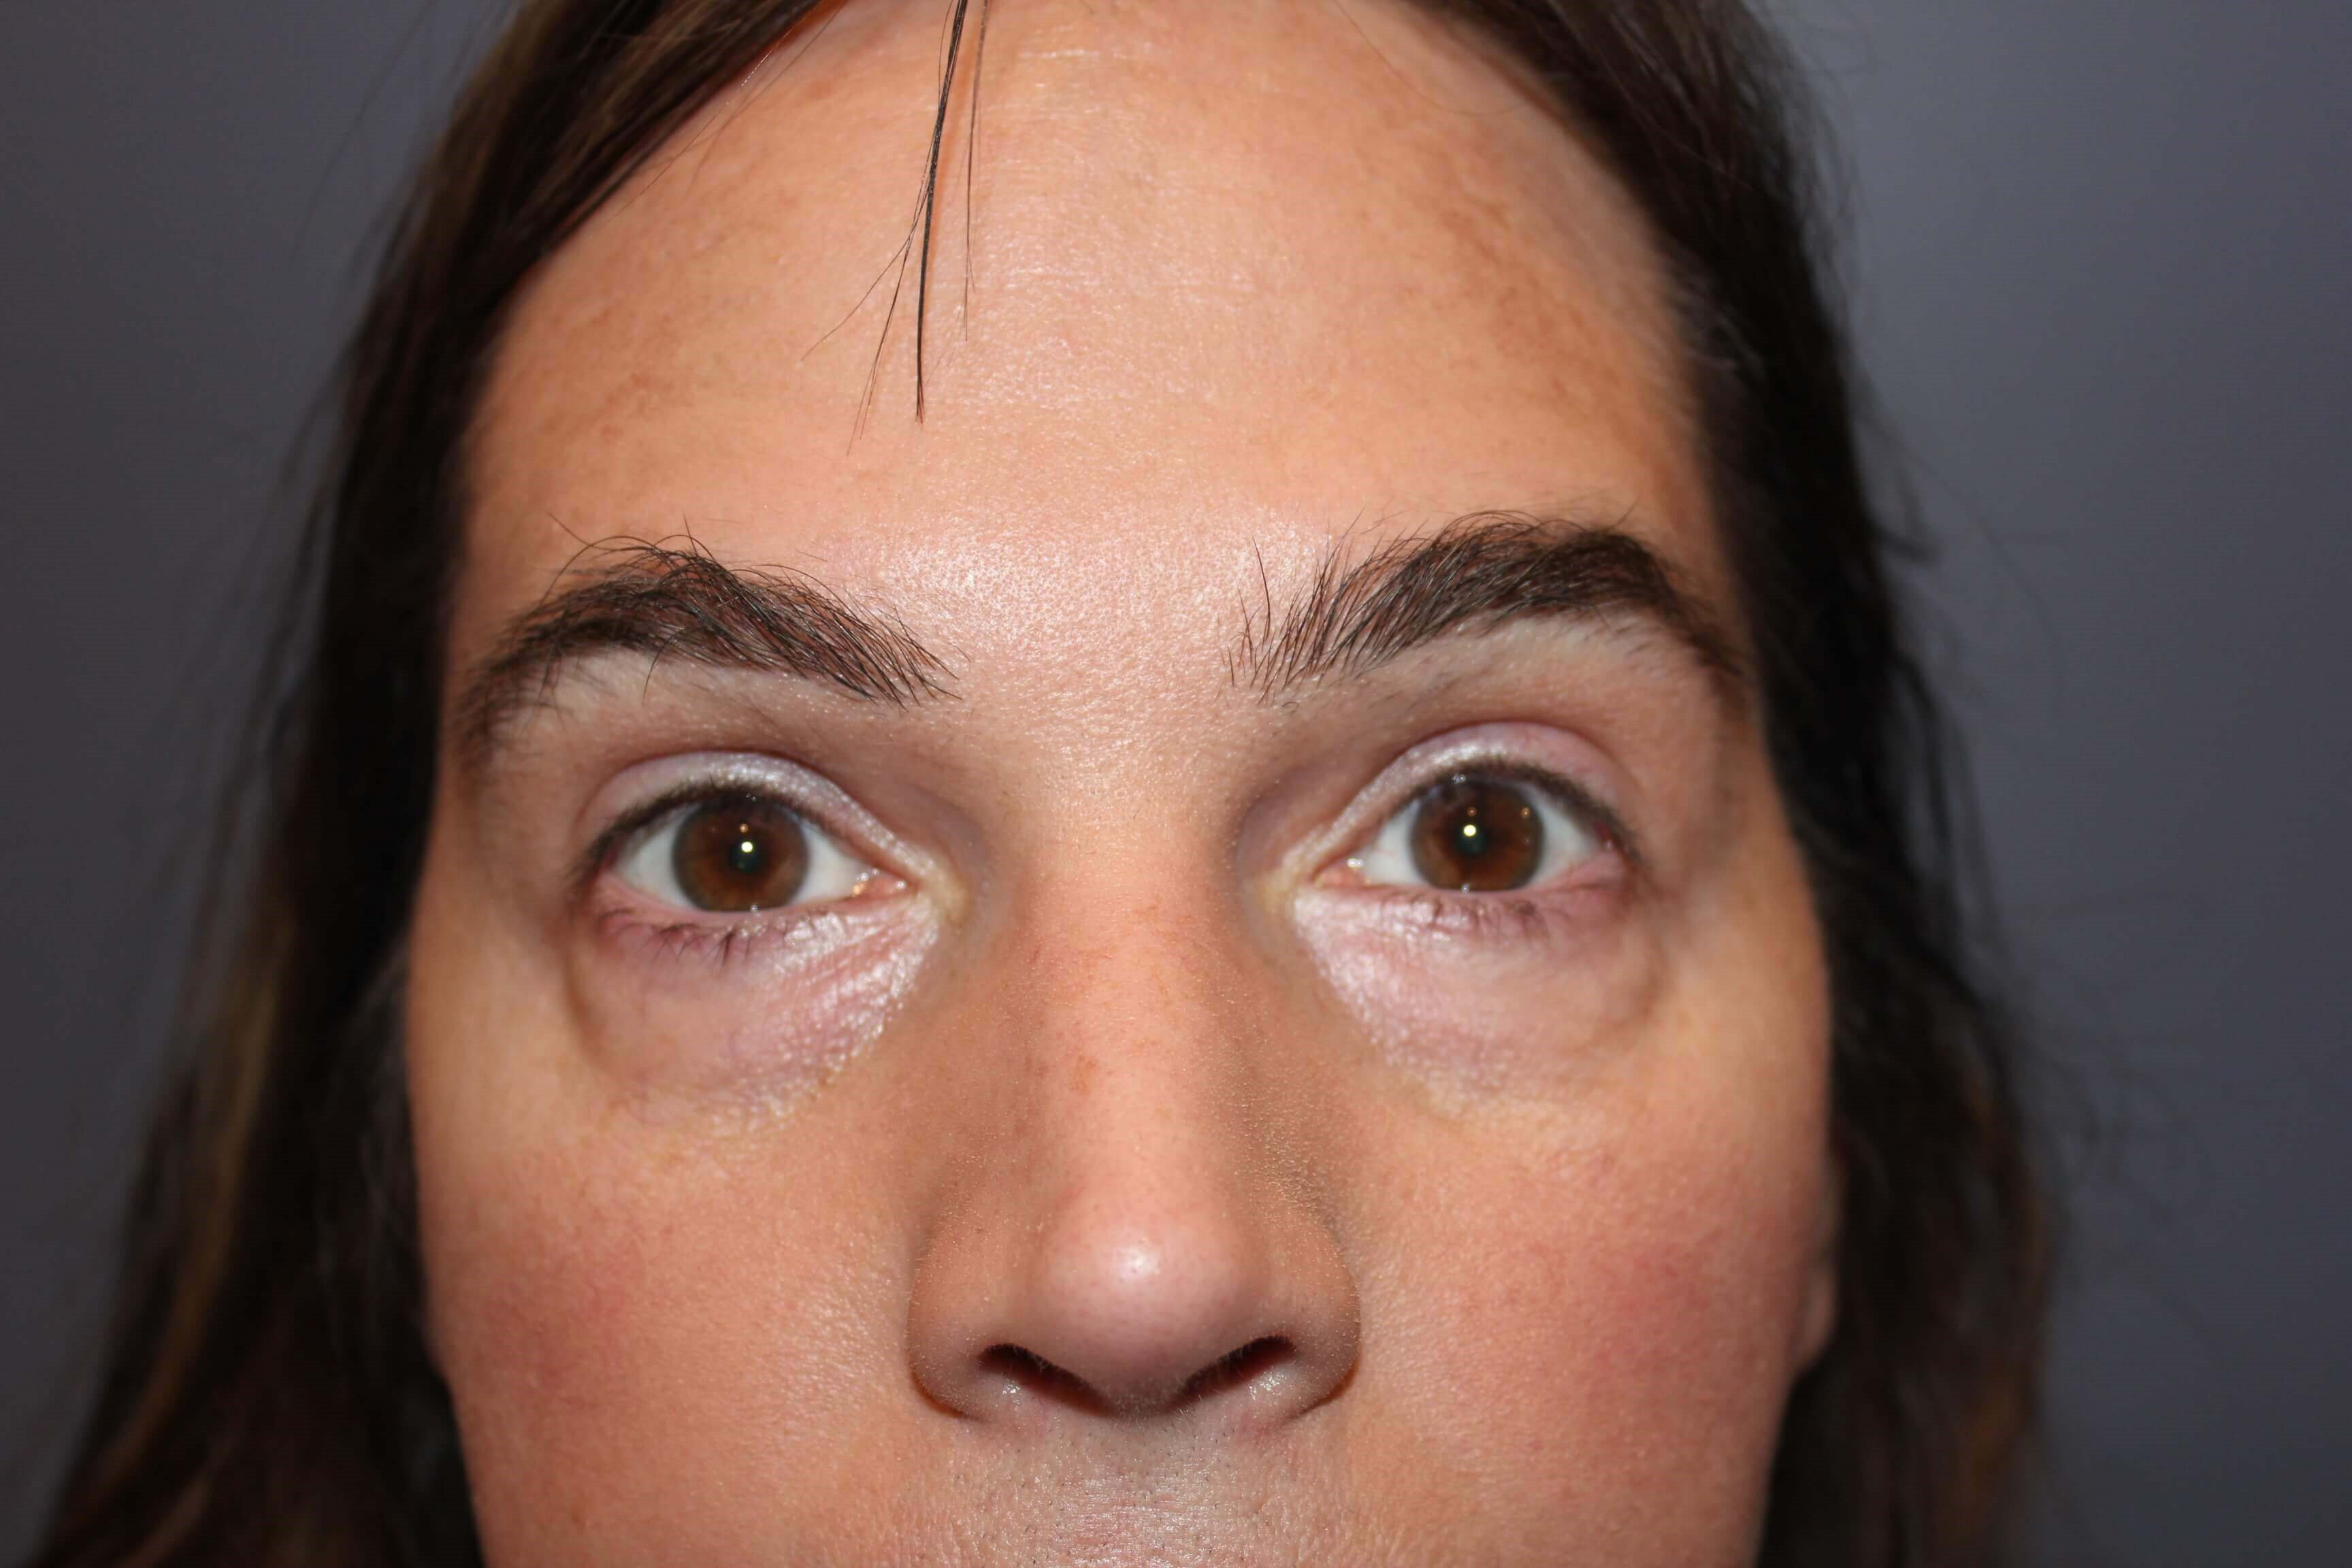 Lower Eyelid Blepharoplasty Before